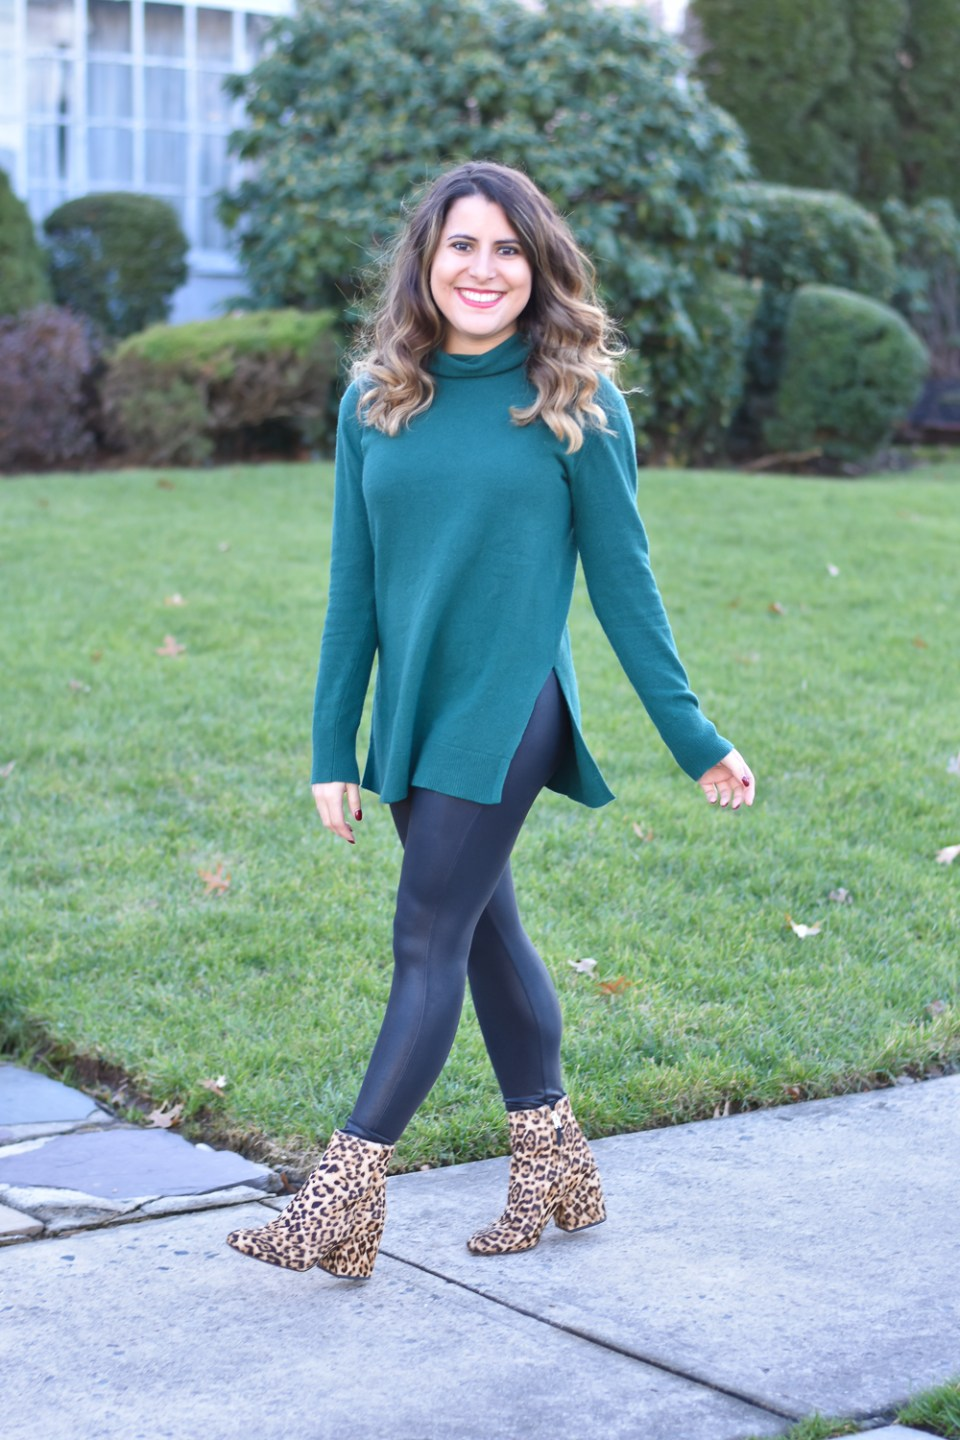 Spanx Faux Leather Leggings + Pop of Leopard